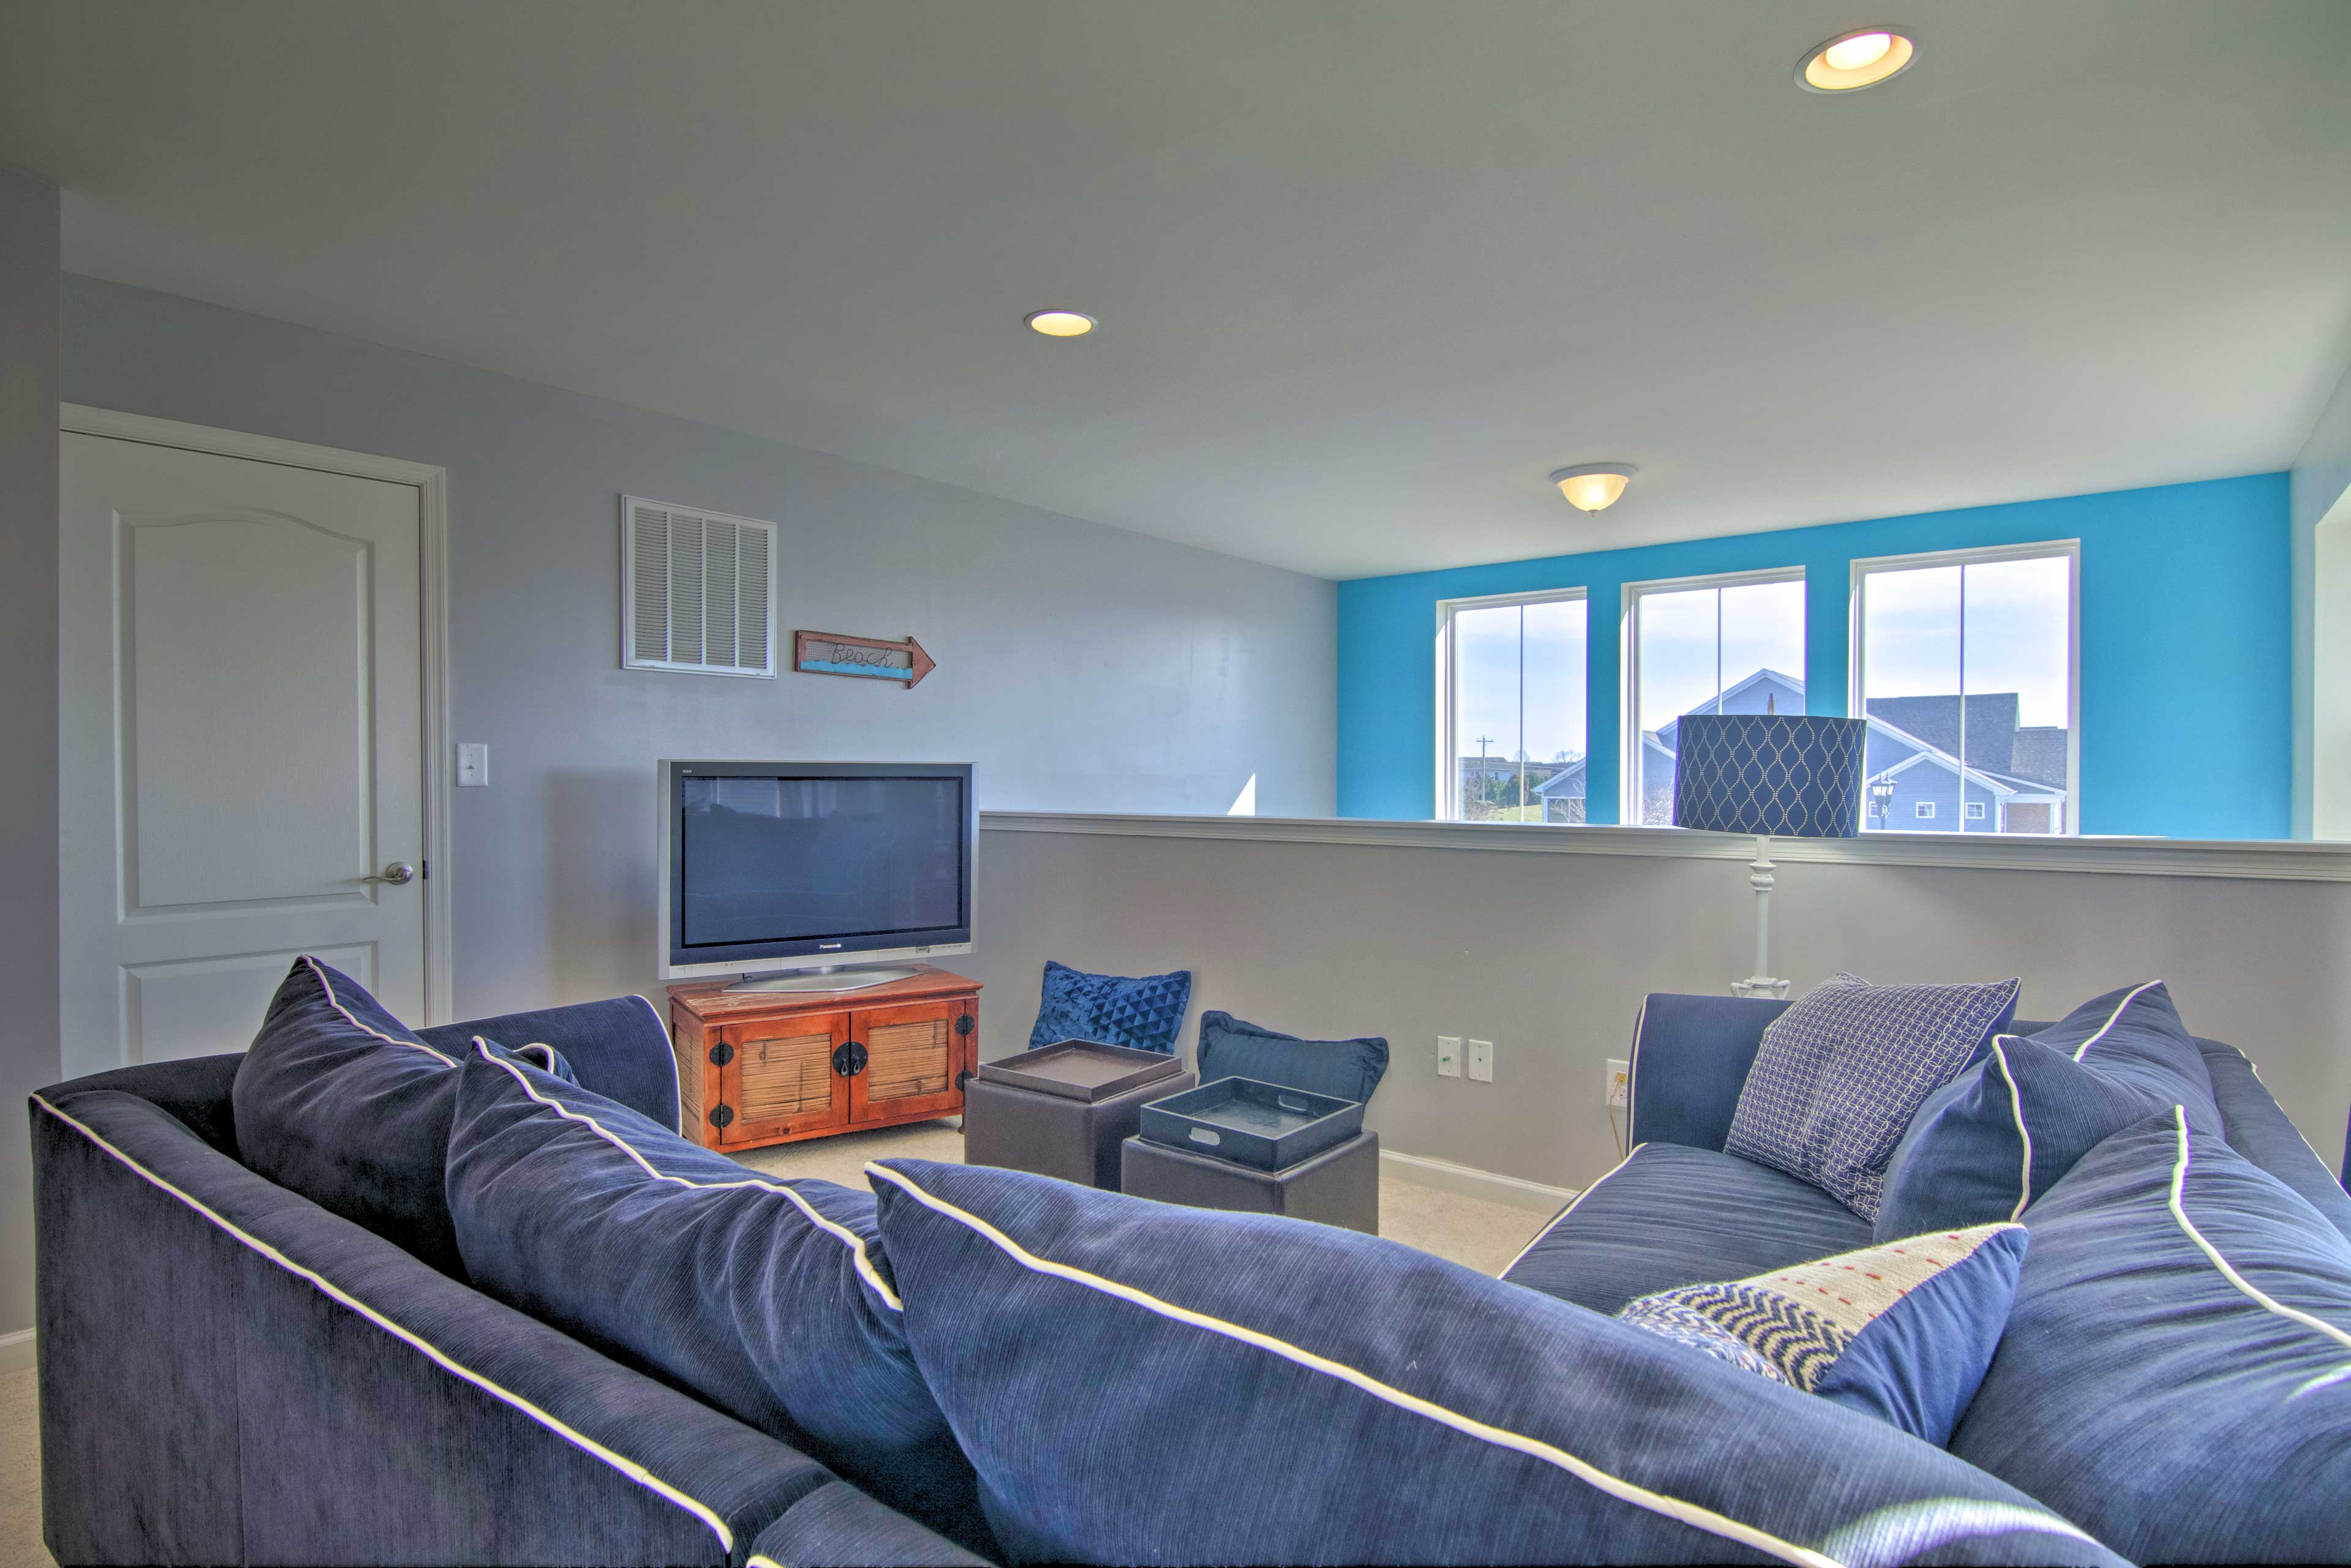 You can fold out the couch to accommodate 2 more guests.